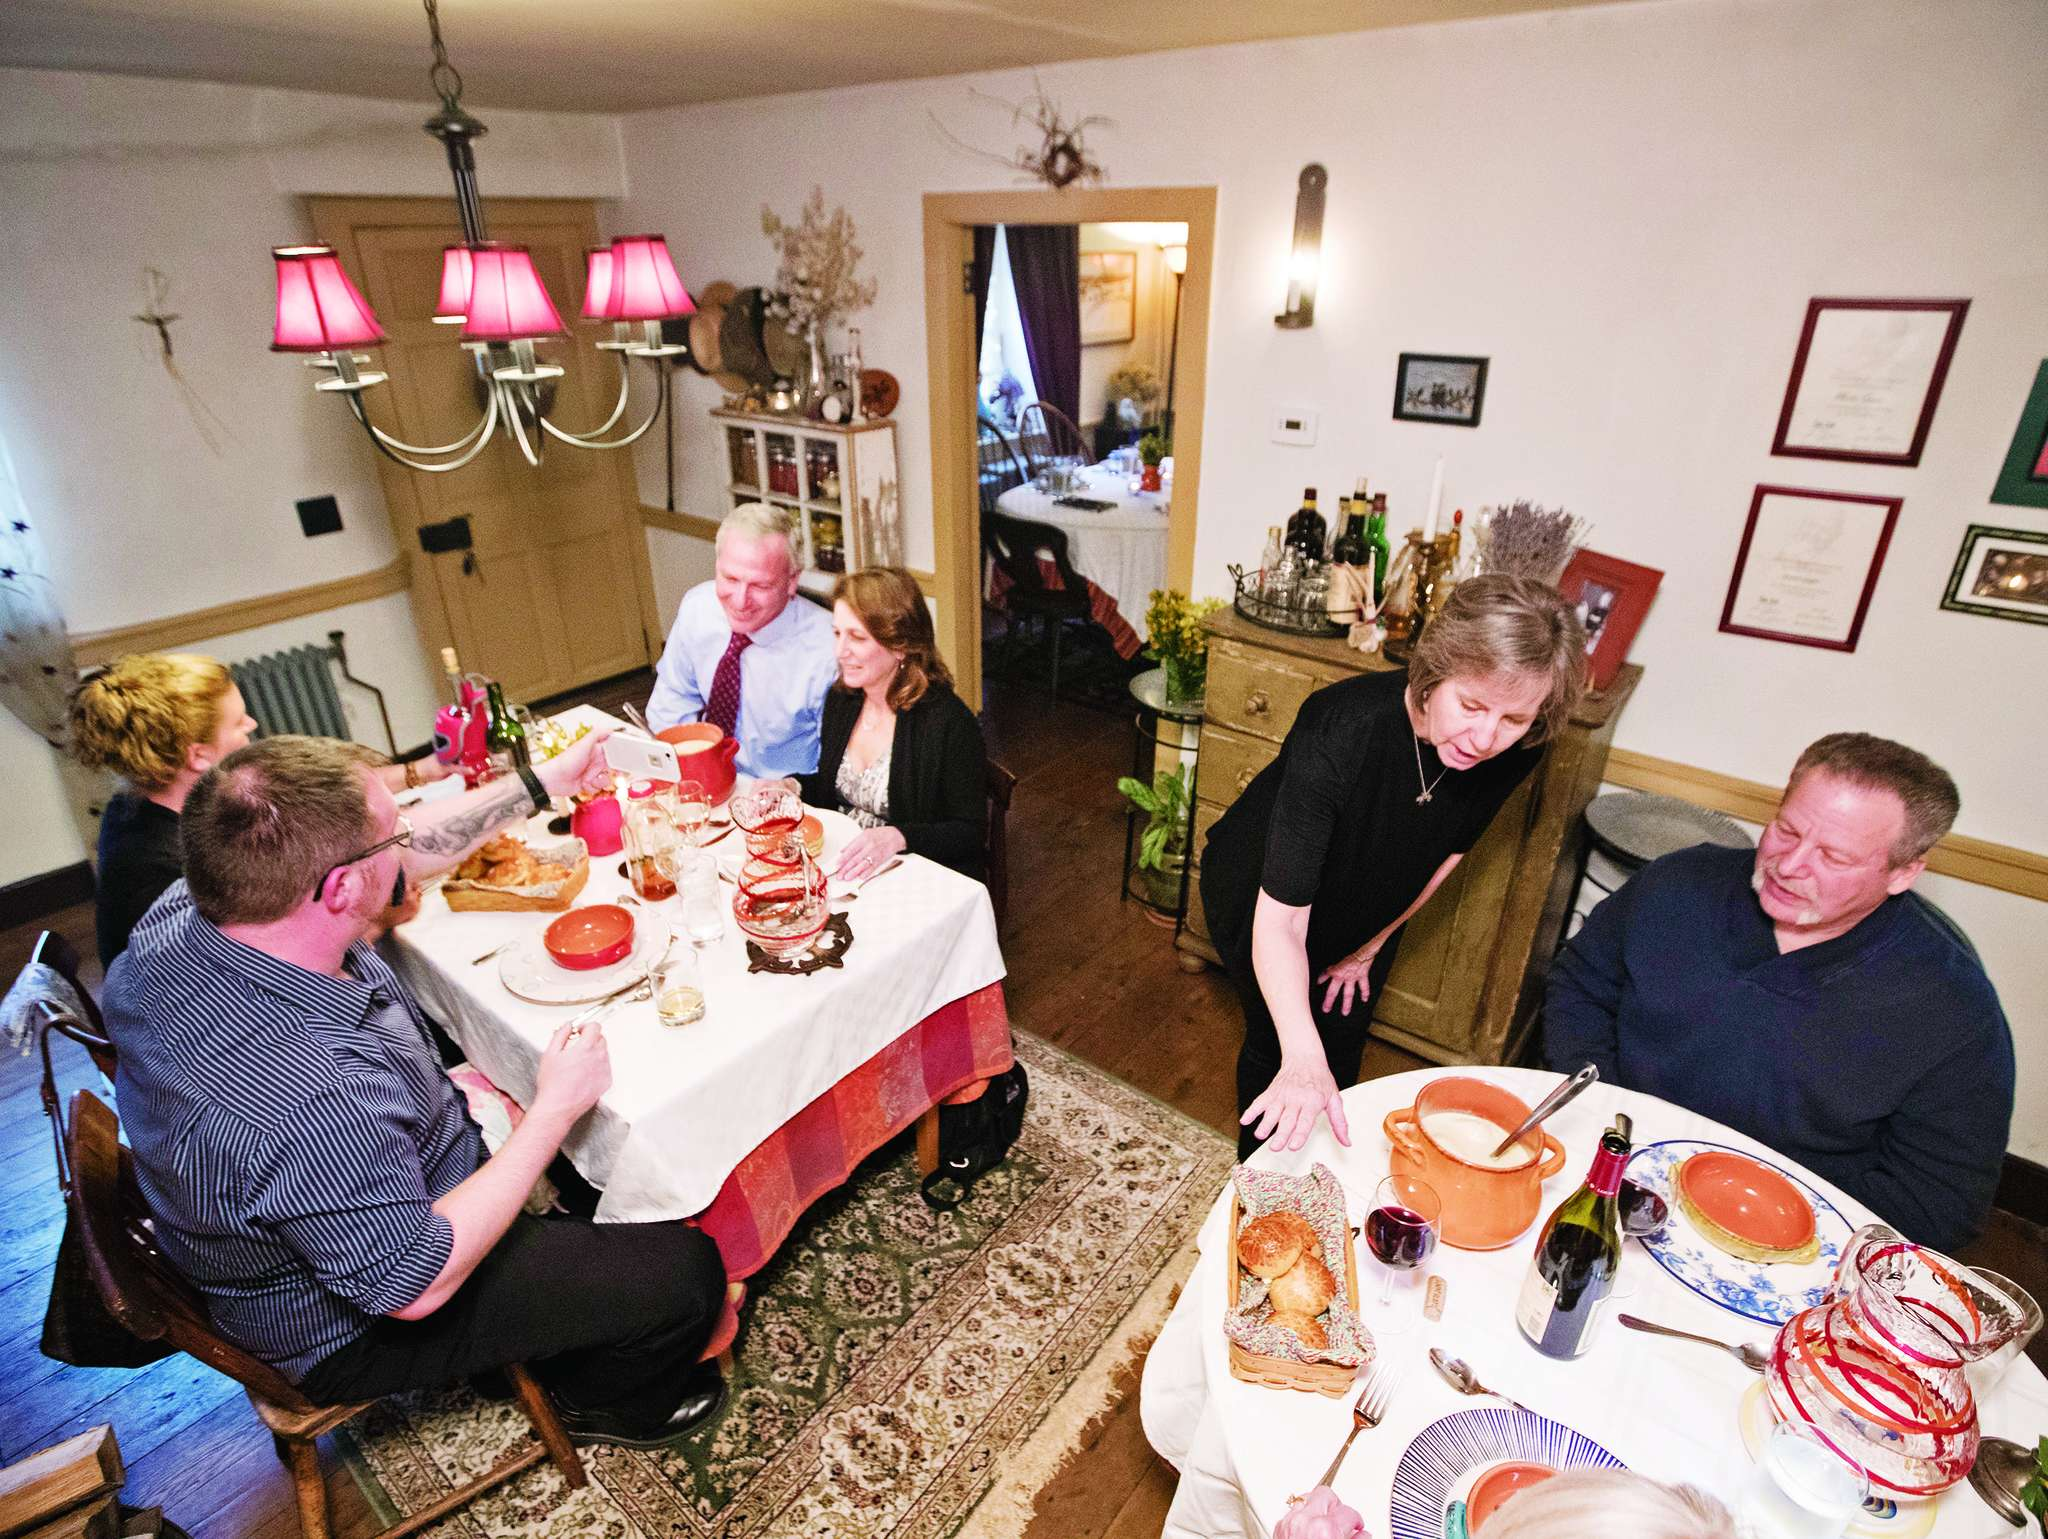 At La Maison, a French country auberge in Chester County, Janet Gagné - wife of chef/owner Martin Gagné - describes the first two courses to Michael Friedland (right) and other patrons.